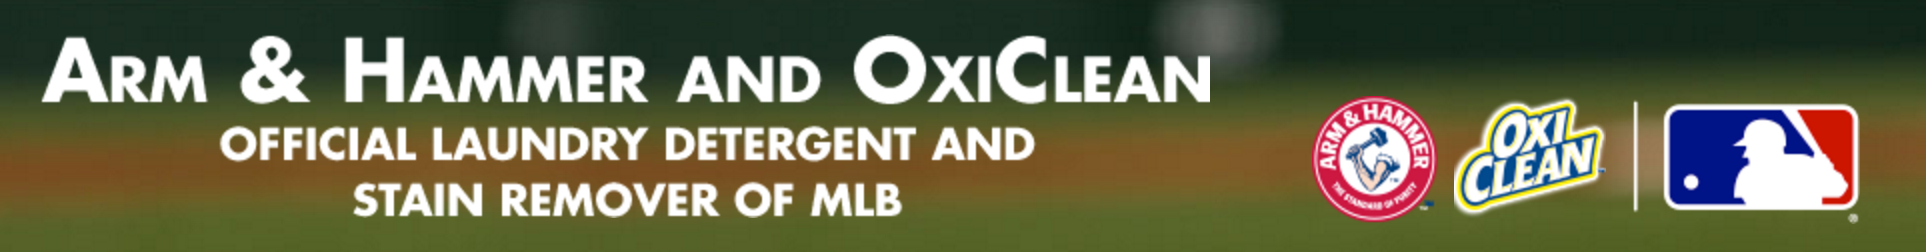 MLB Laundry Detergent And Stain Remover